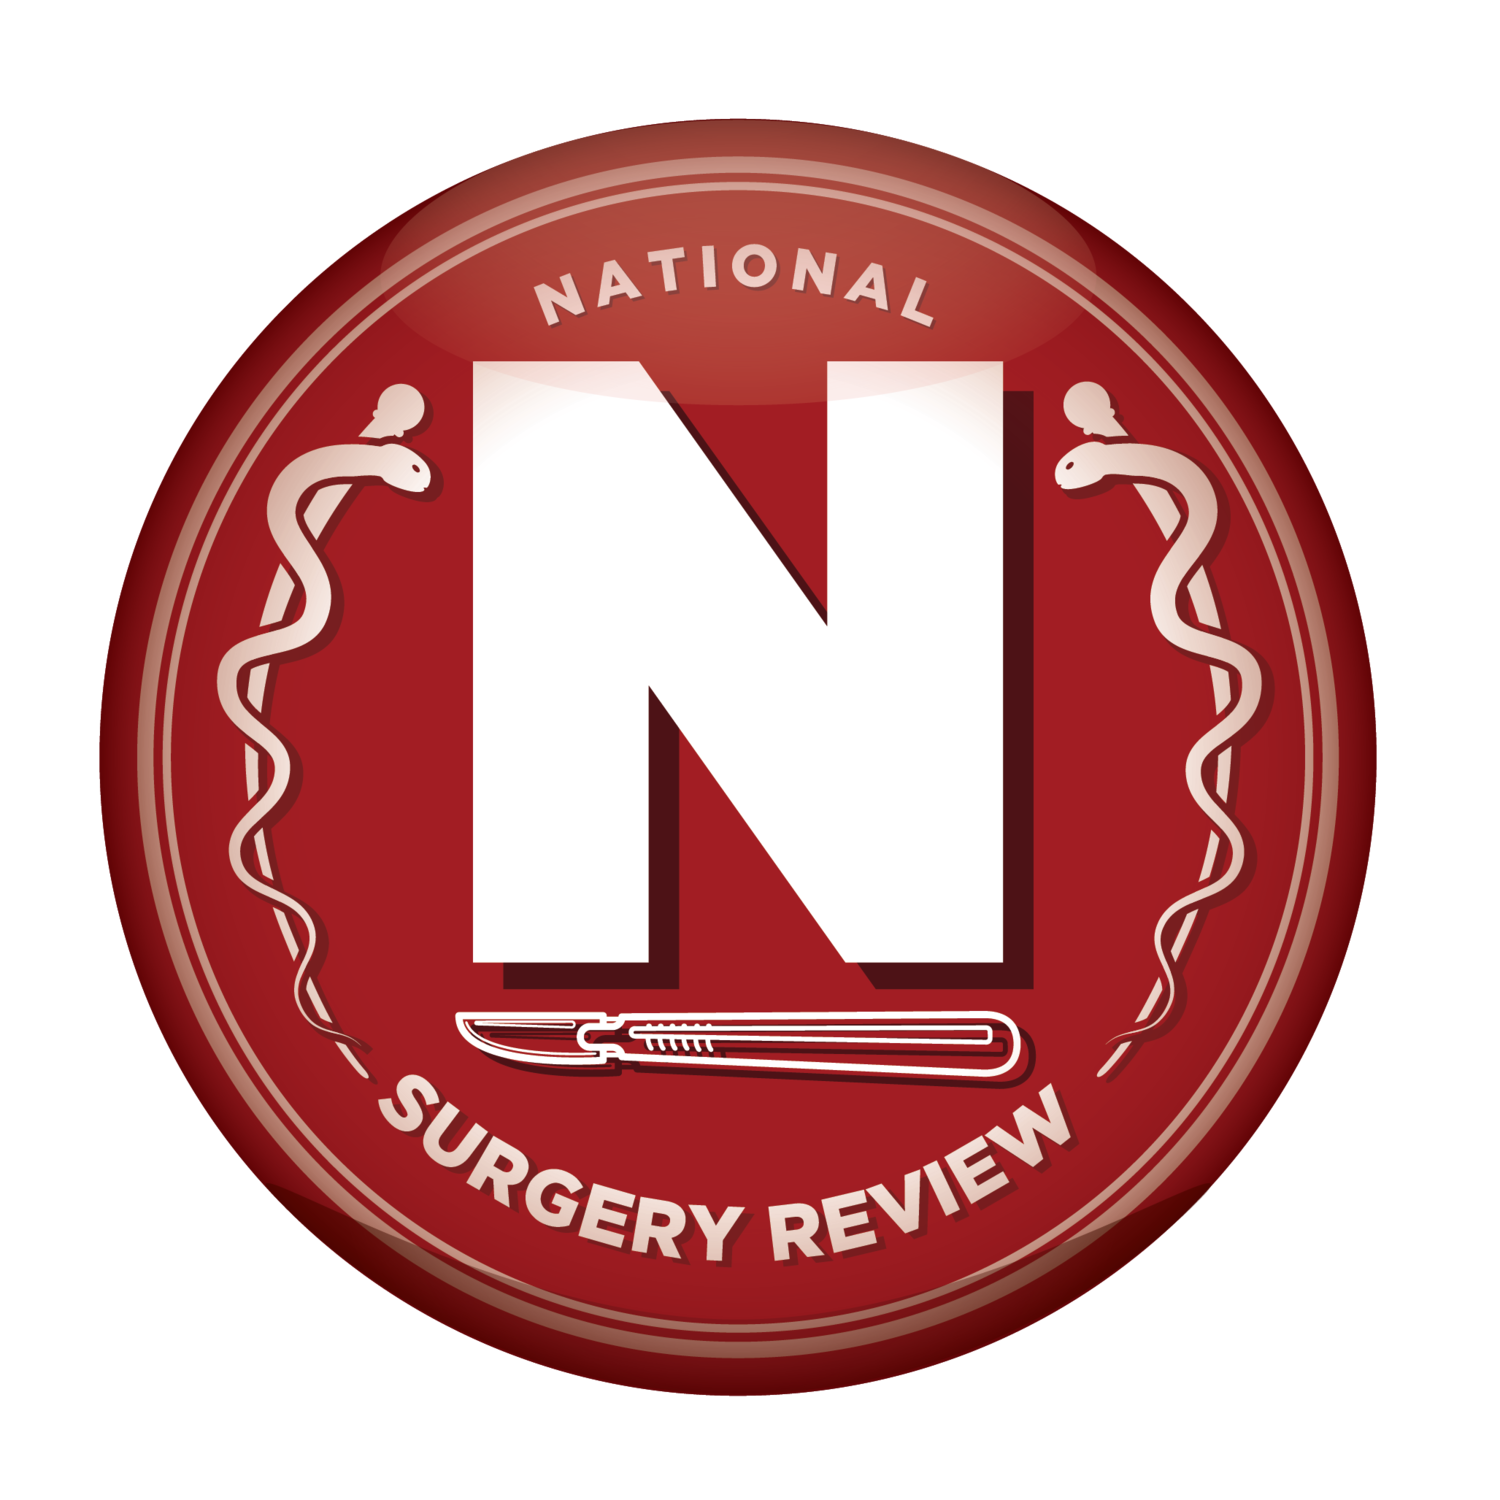 National Surgery Review